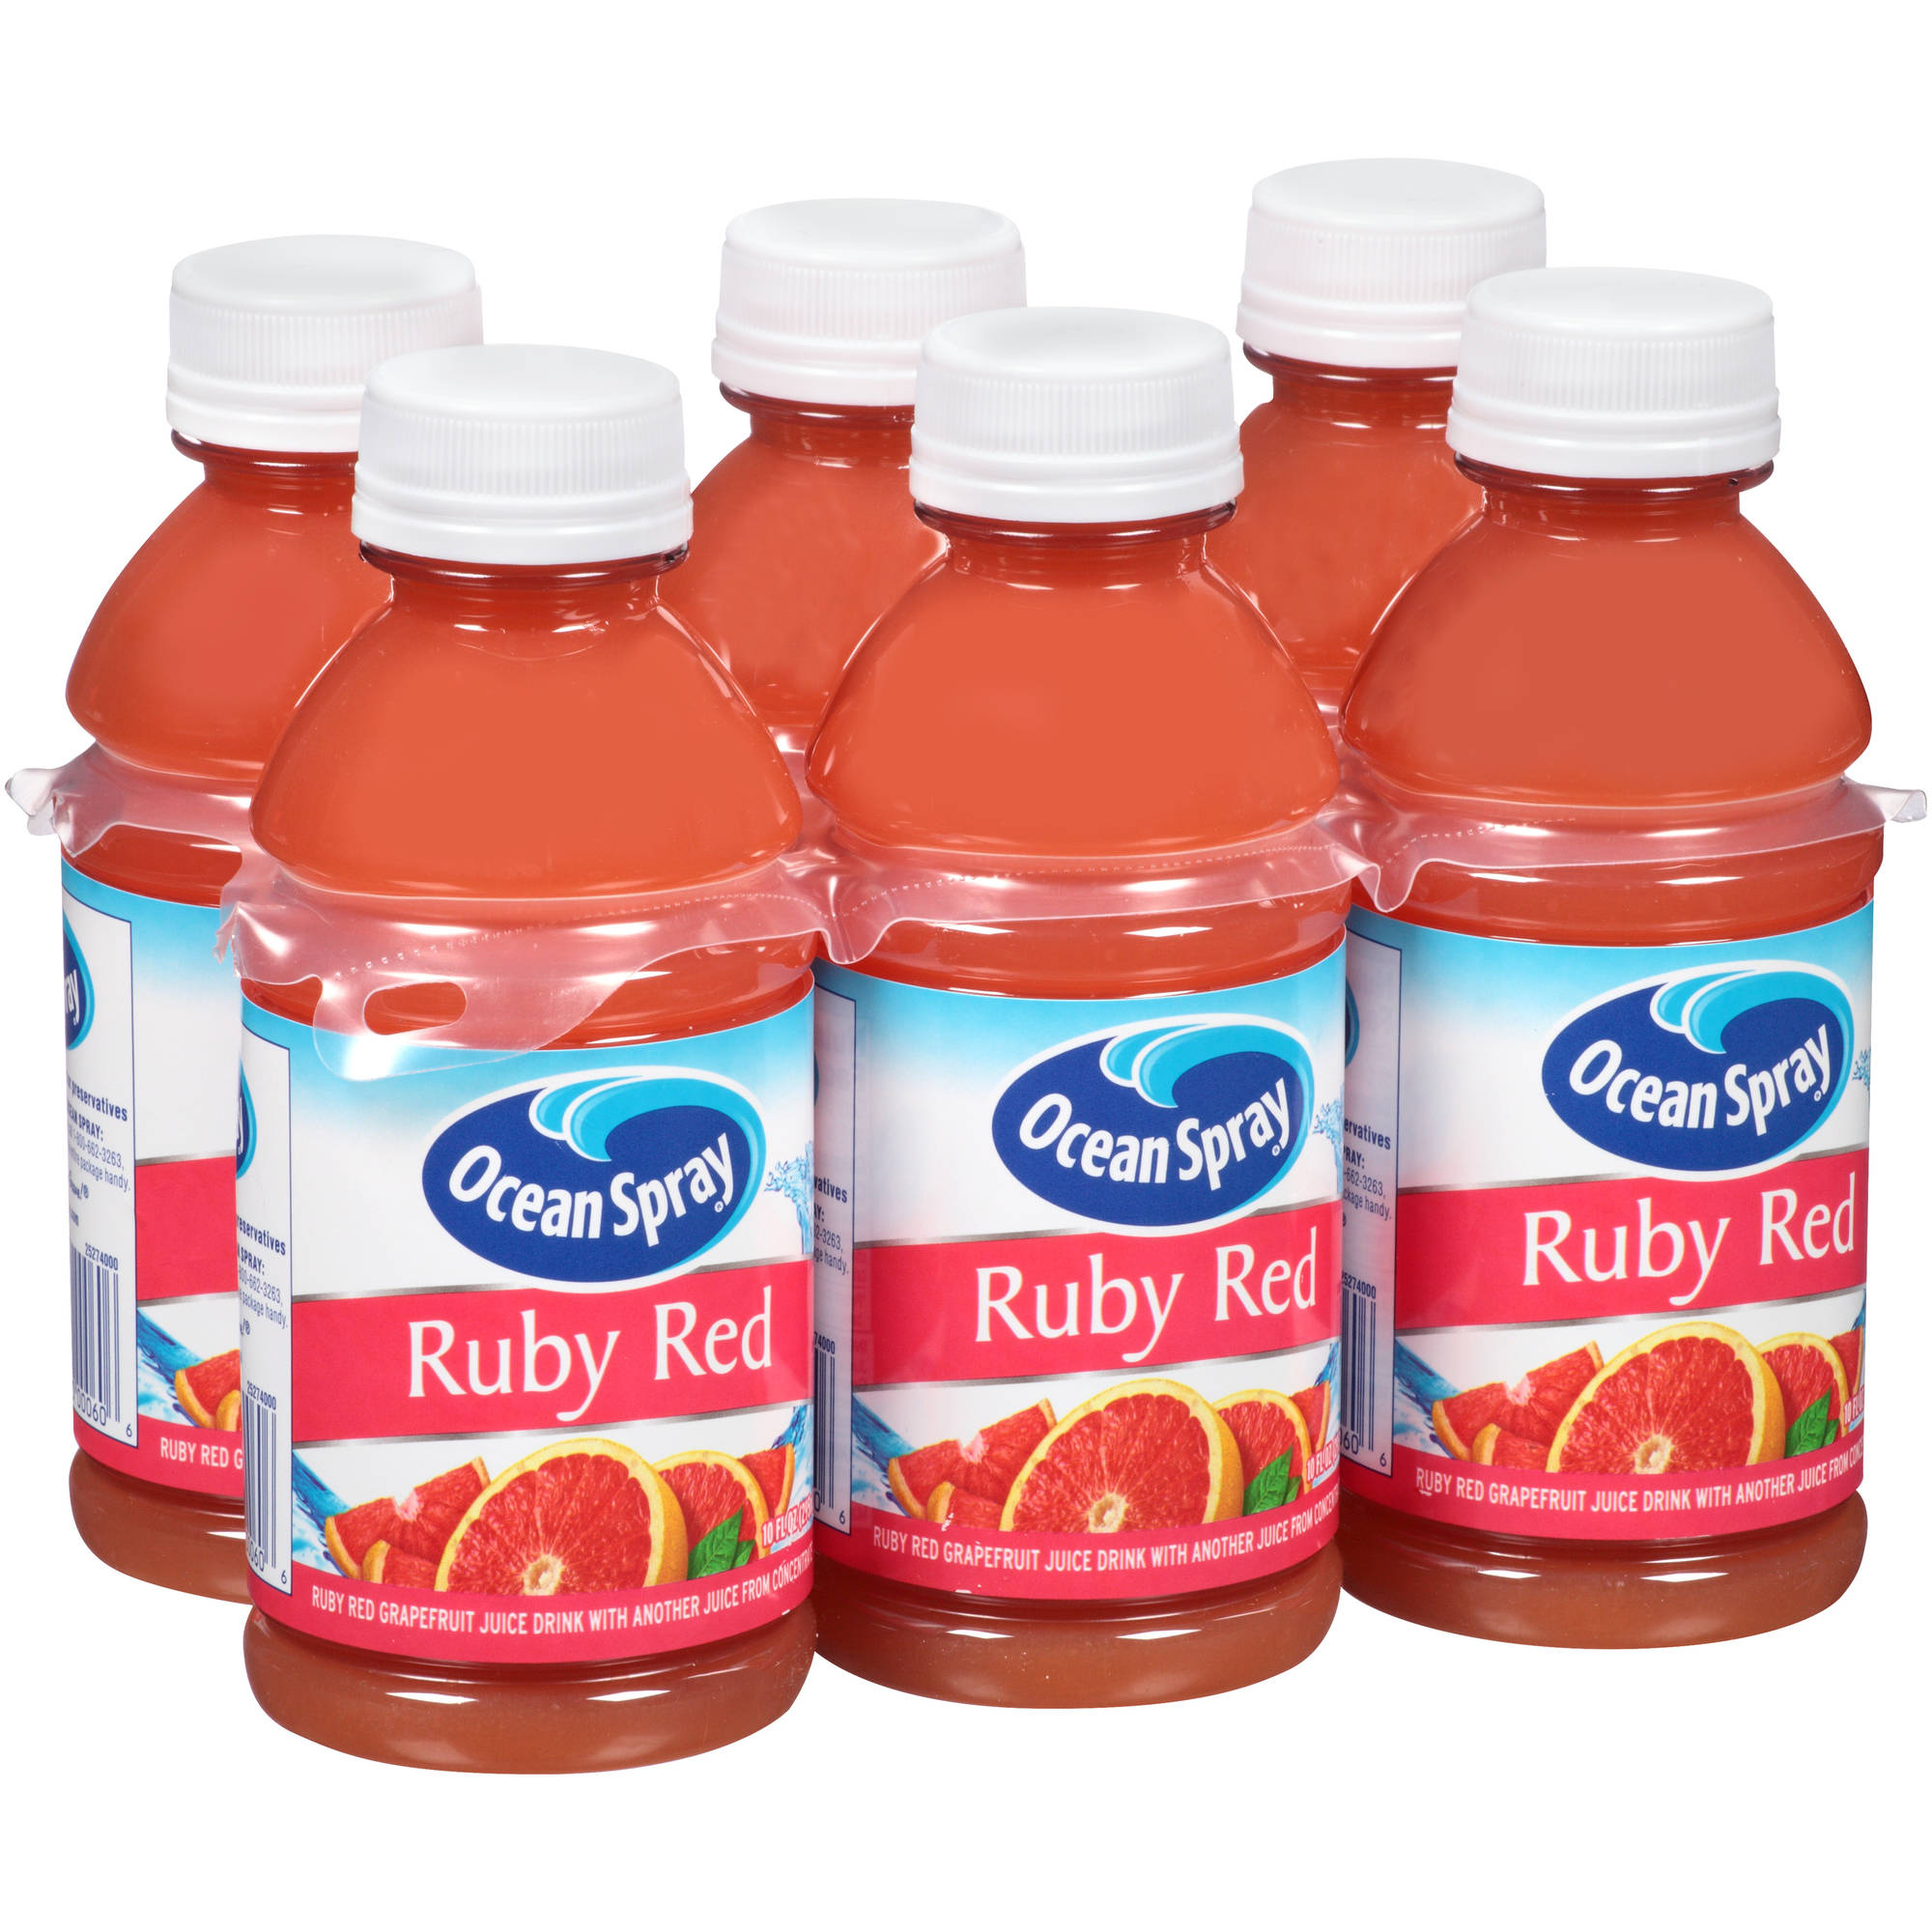 Ocean Spray Ruby Grapefruit Juice, 6 Ct/10 Oz